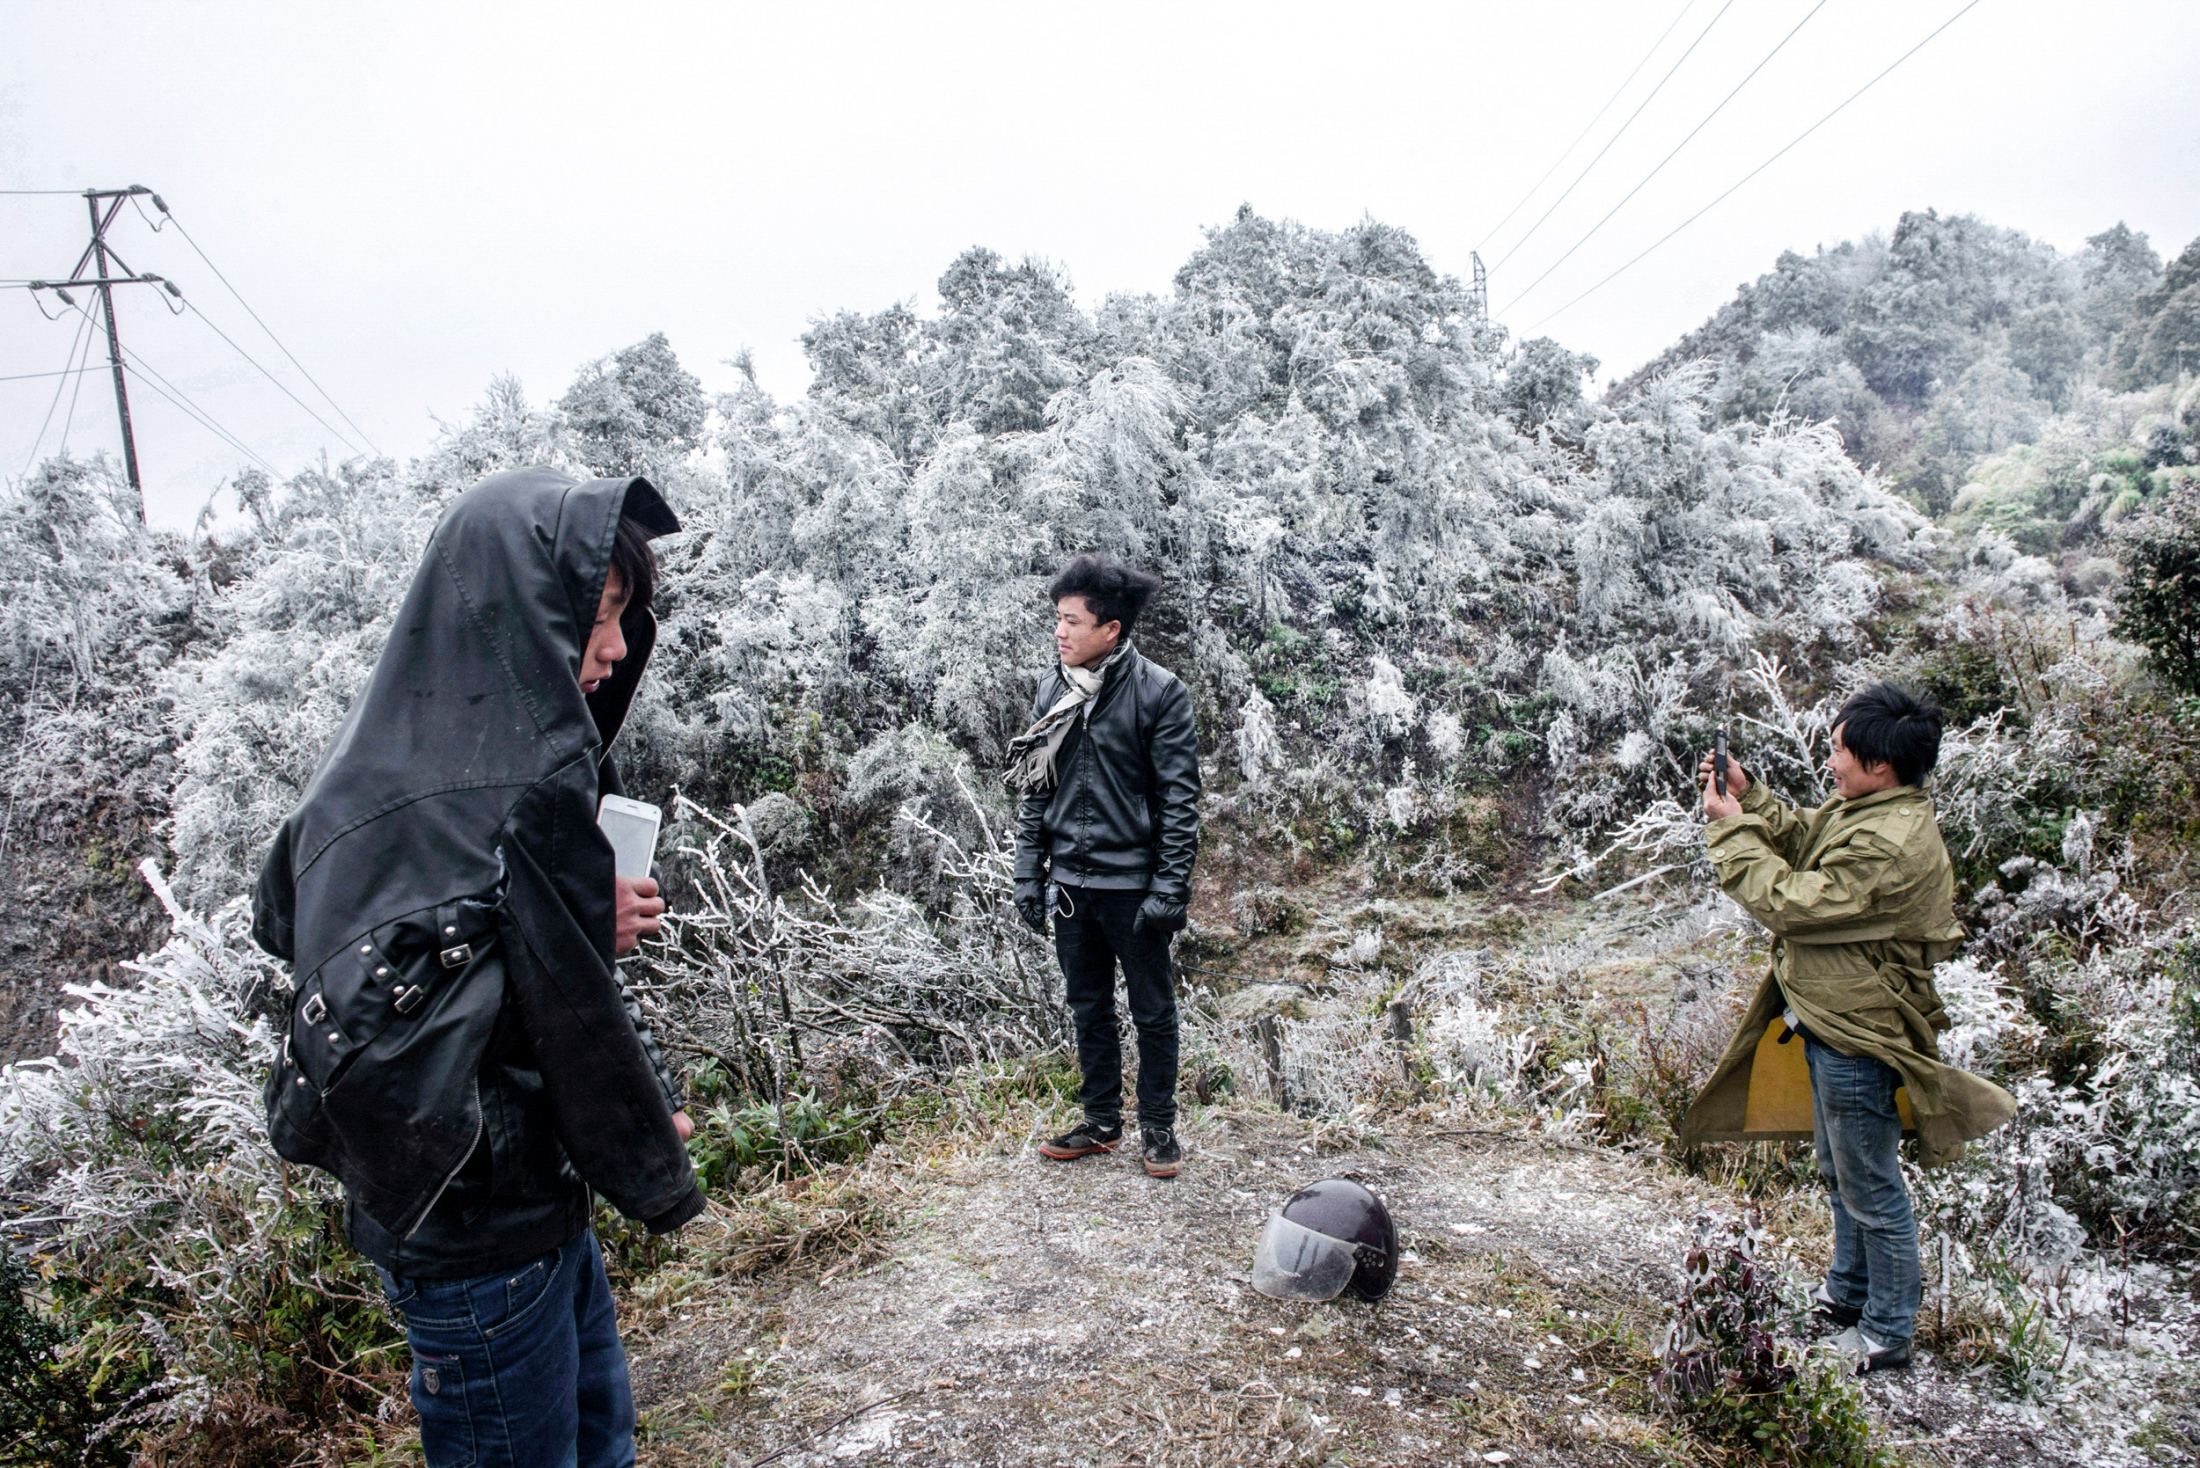 Cold wave causes Zero degrees Celsius on high mountains of Lao Cai province in Northern Vietnam resulted in frost covered their peaks. Locals experience this unusual phenomenon. February 5, 2018.